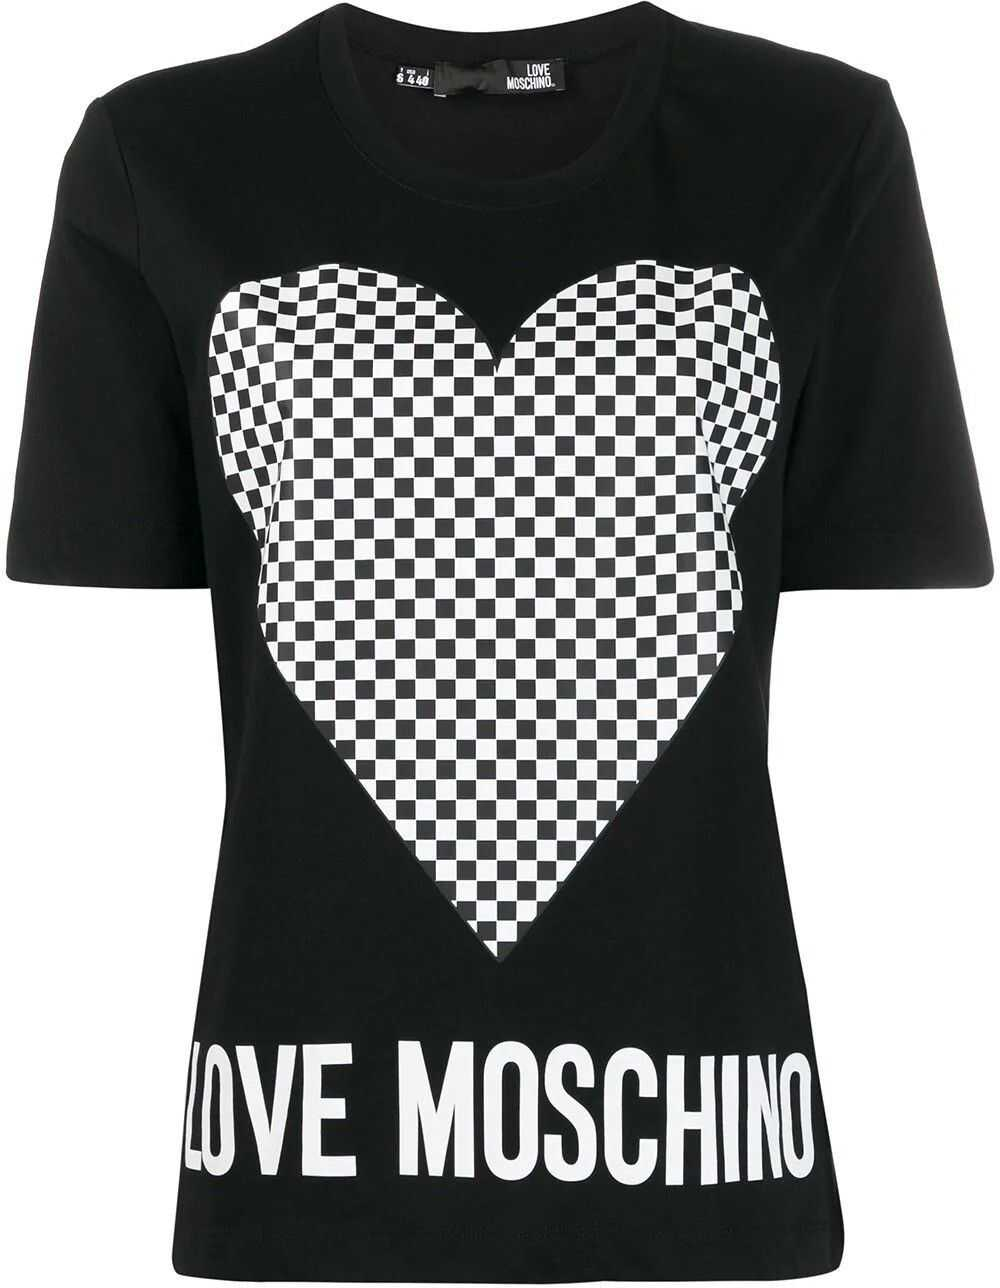 LOVE Moschino Cotton T-Shirt BLACK